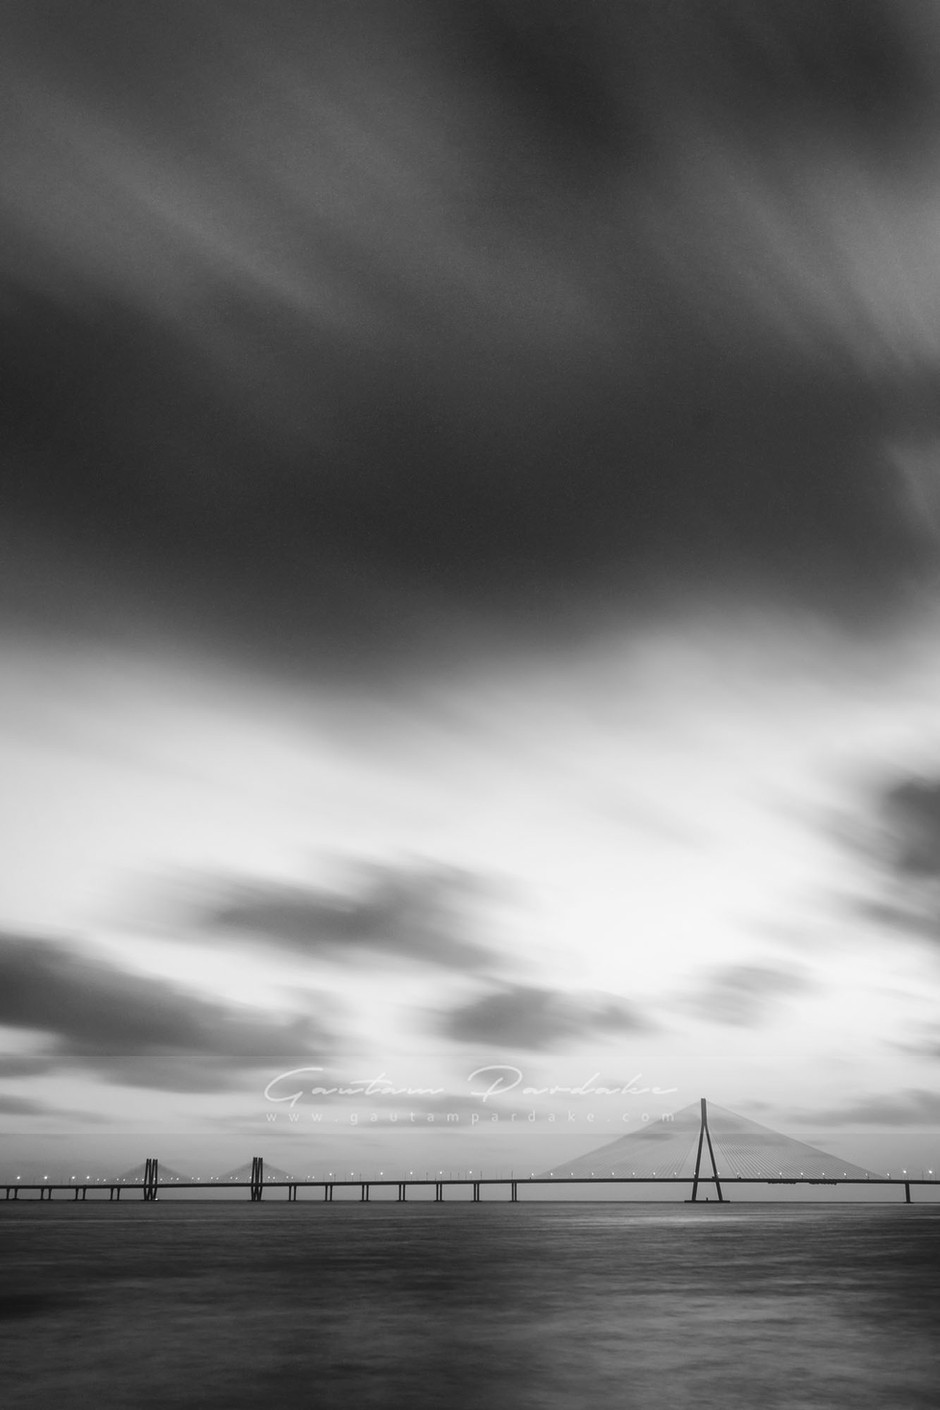 Artistic black and white landscape photo of the Bandra worli Sealink in Mumbai